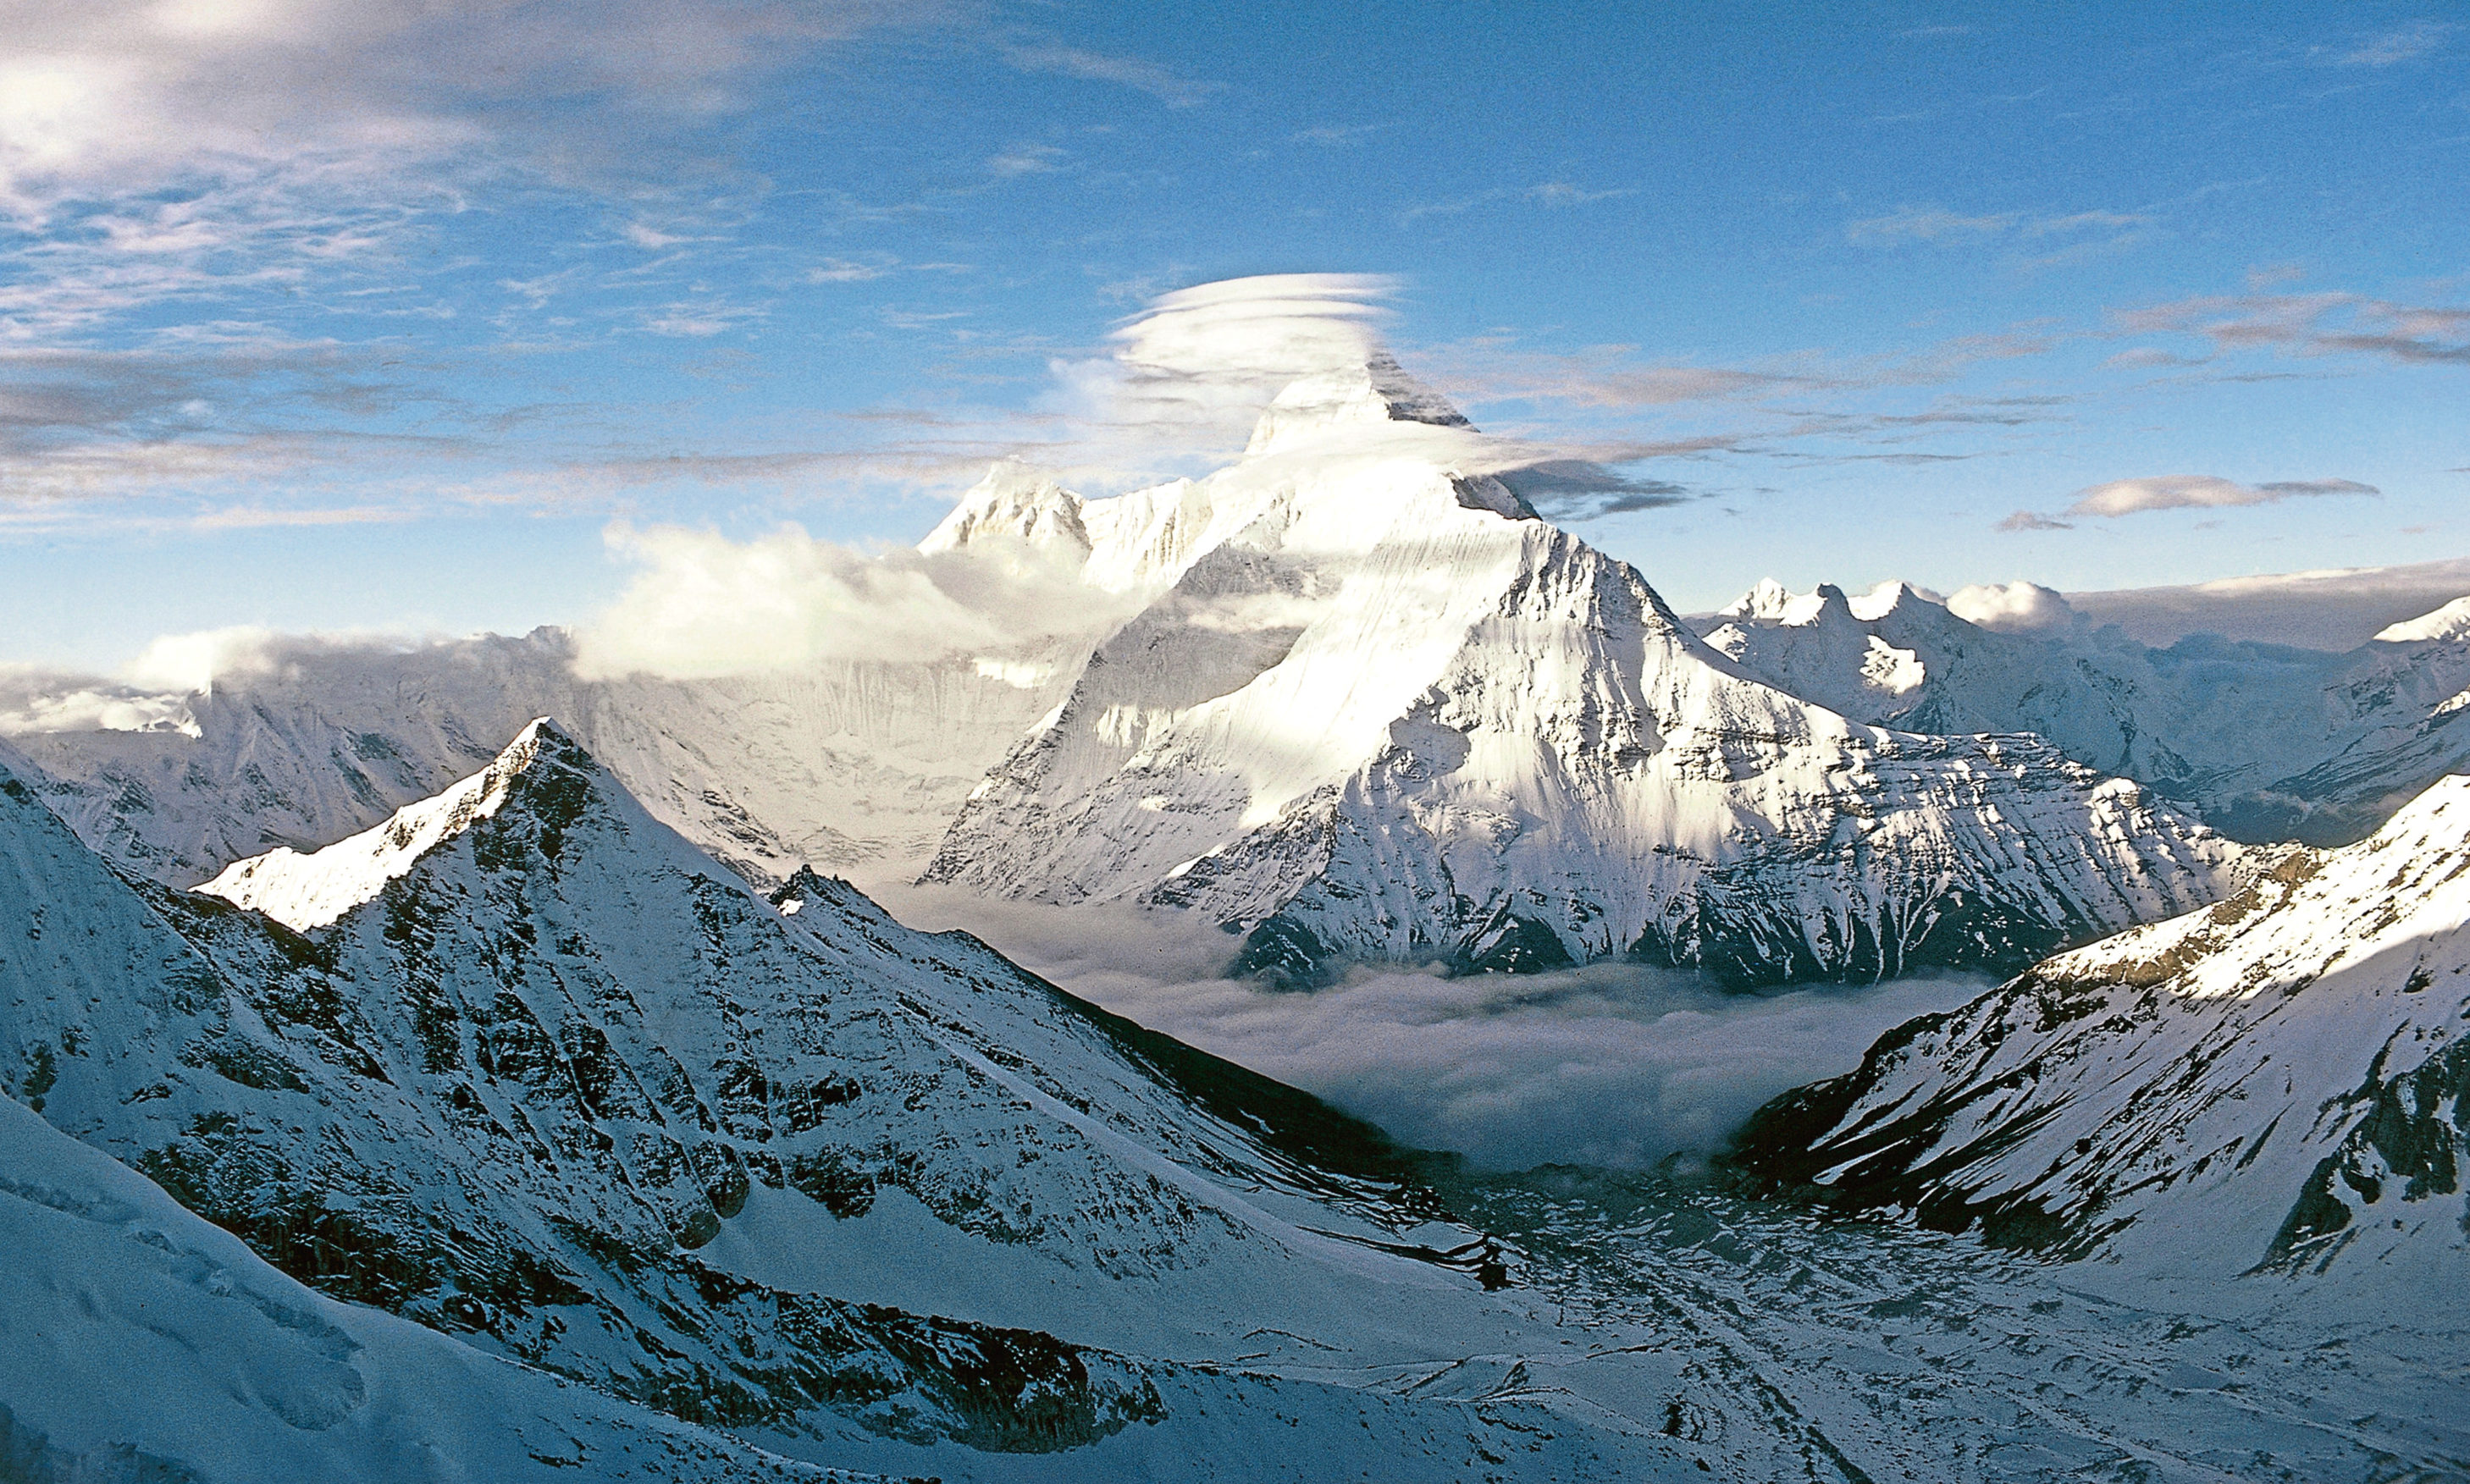 Nanda Devi, a two-peaked massif in the Himalayas, Uttarakhand State, India.